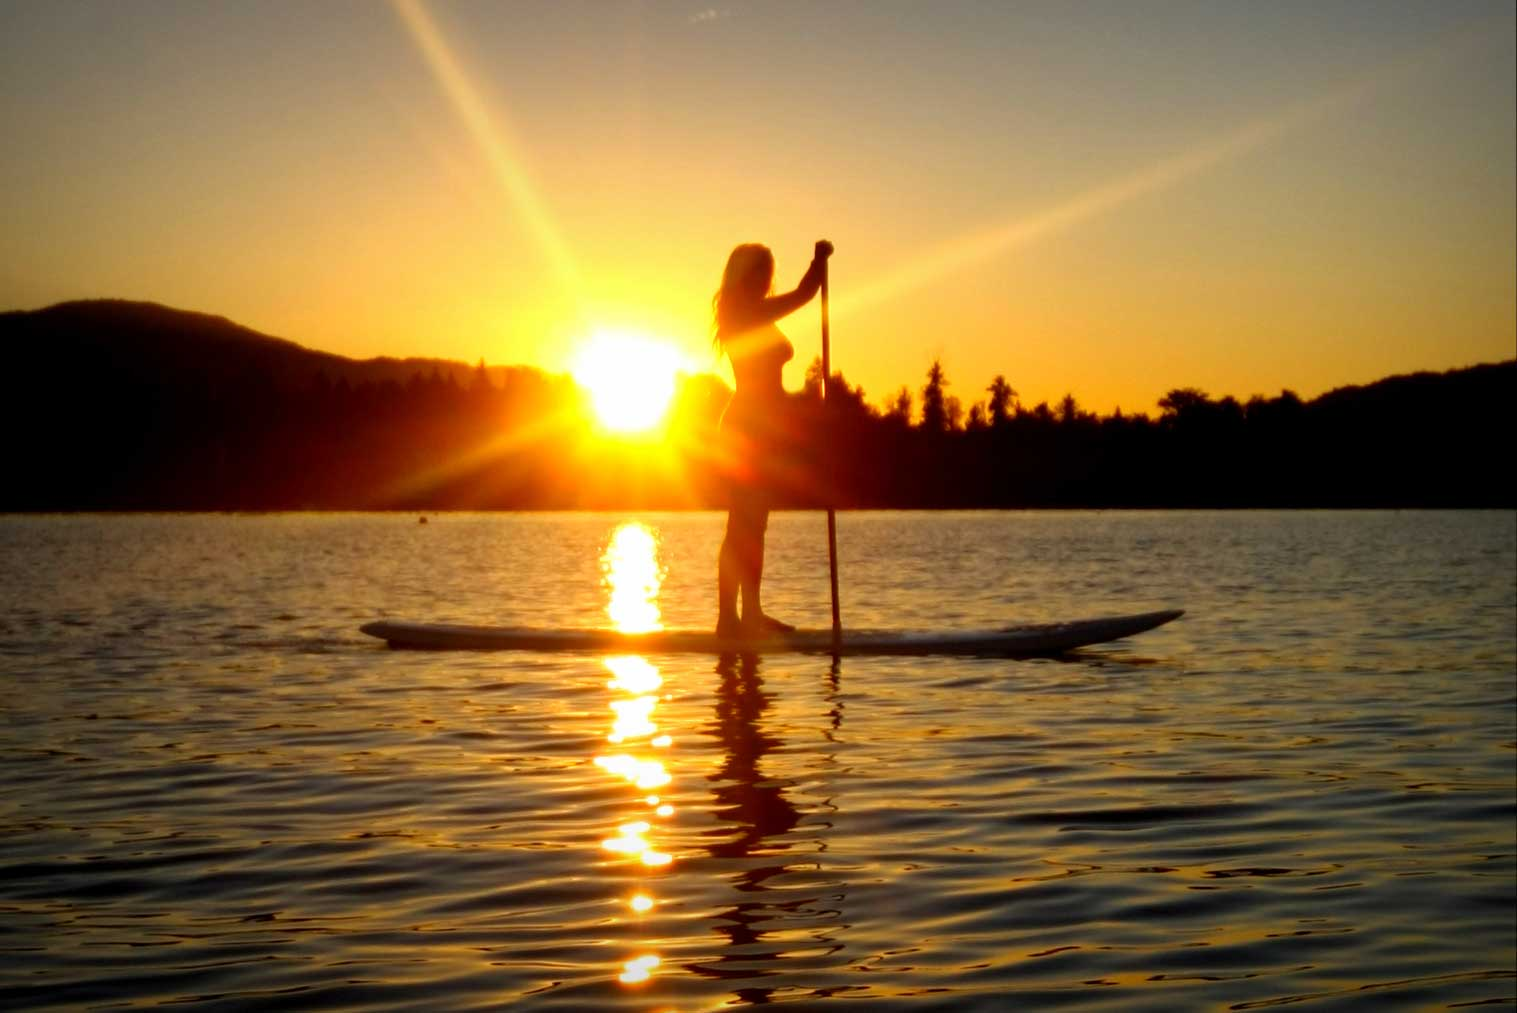 SUP - Stand Up Paddle la tecnica